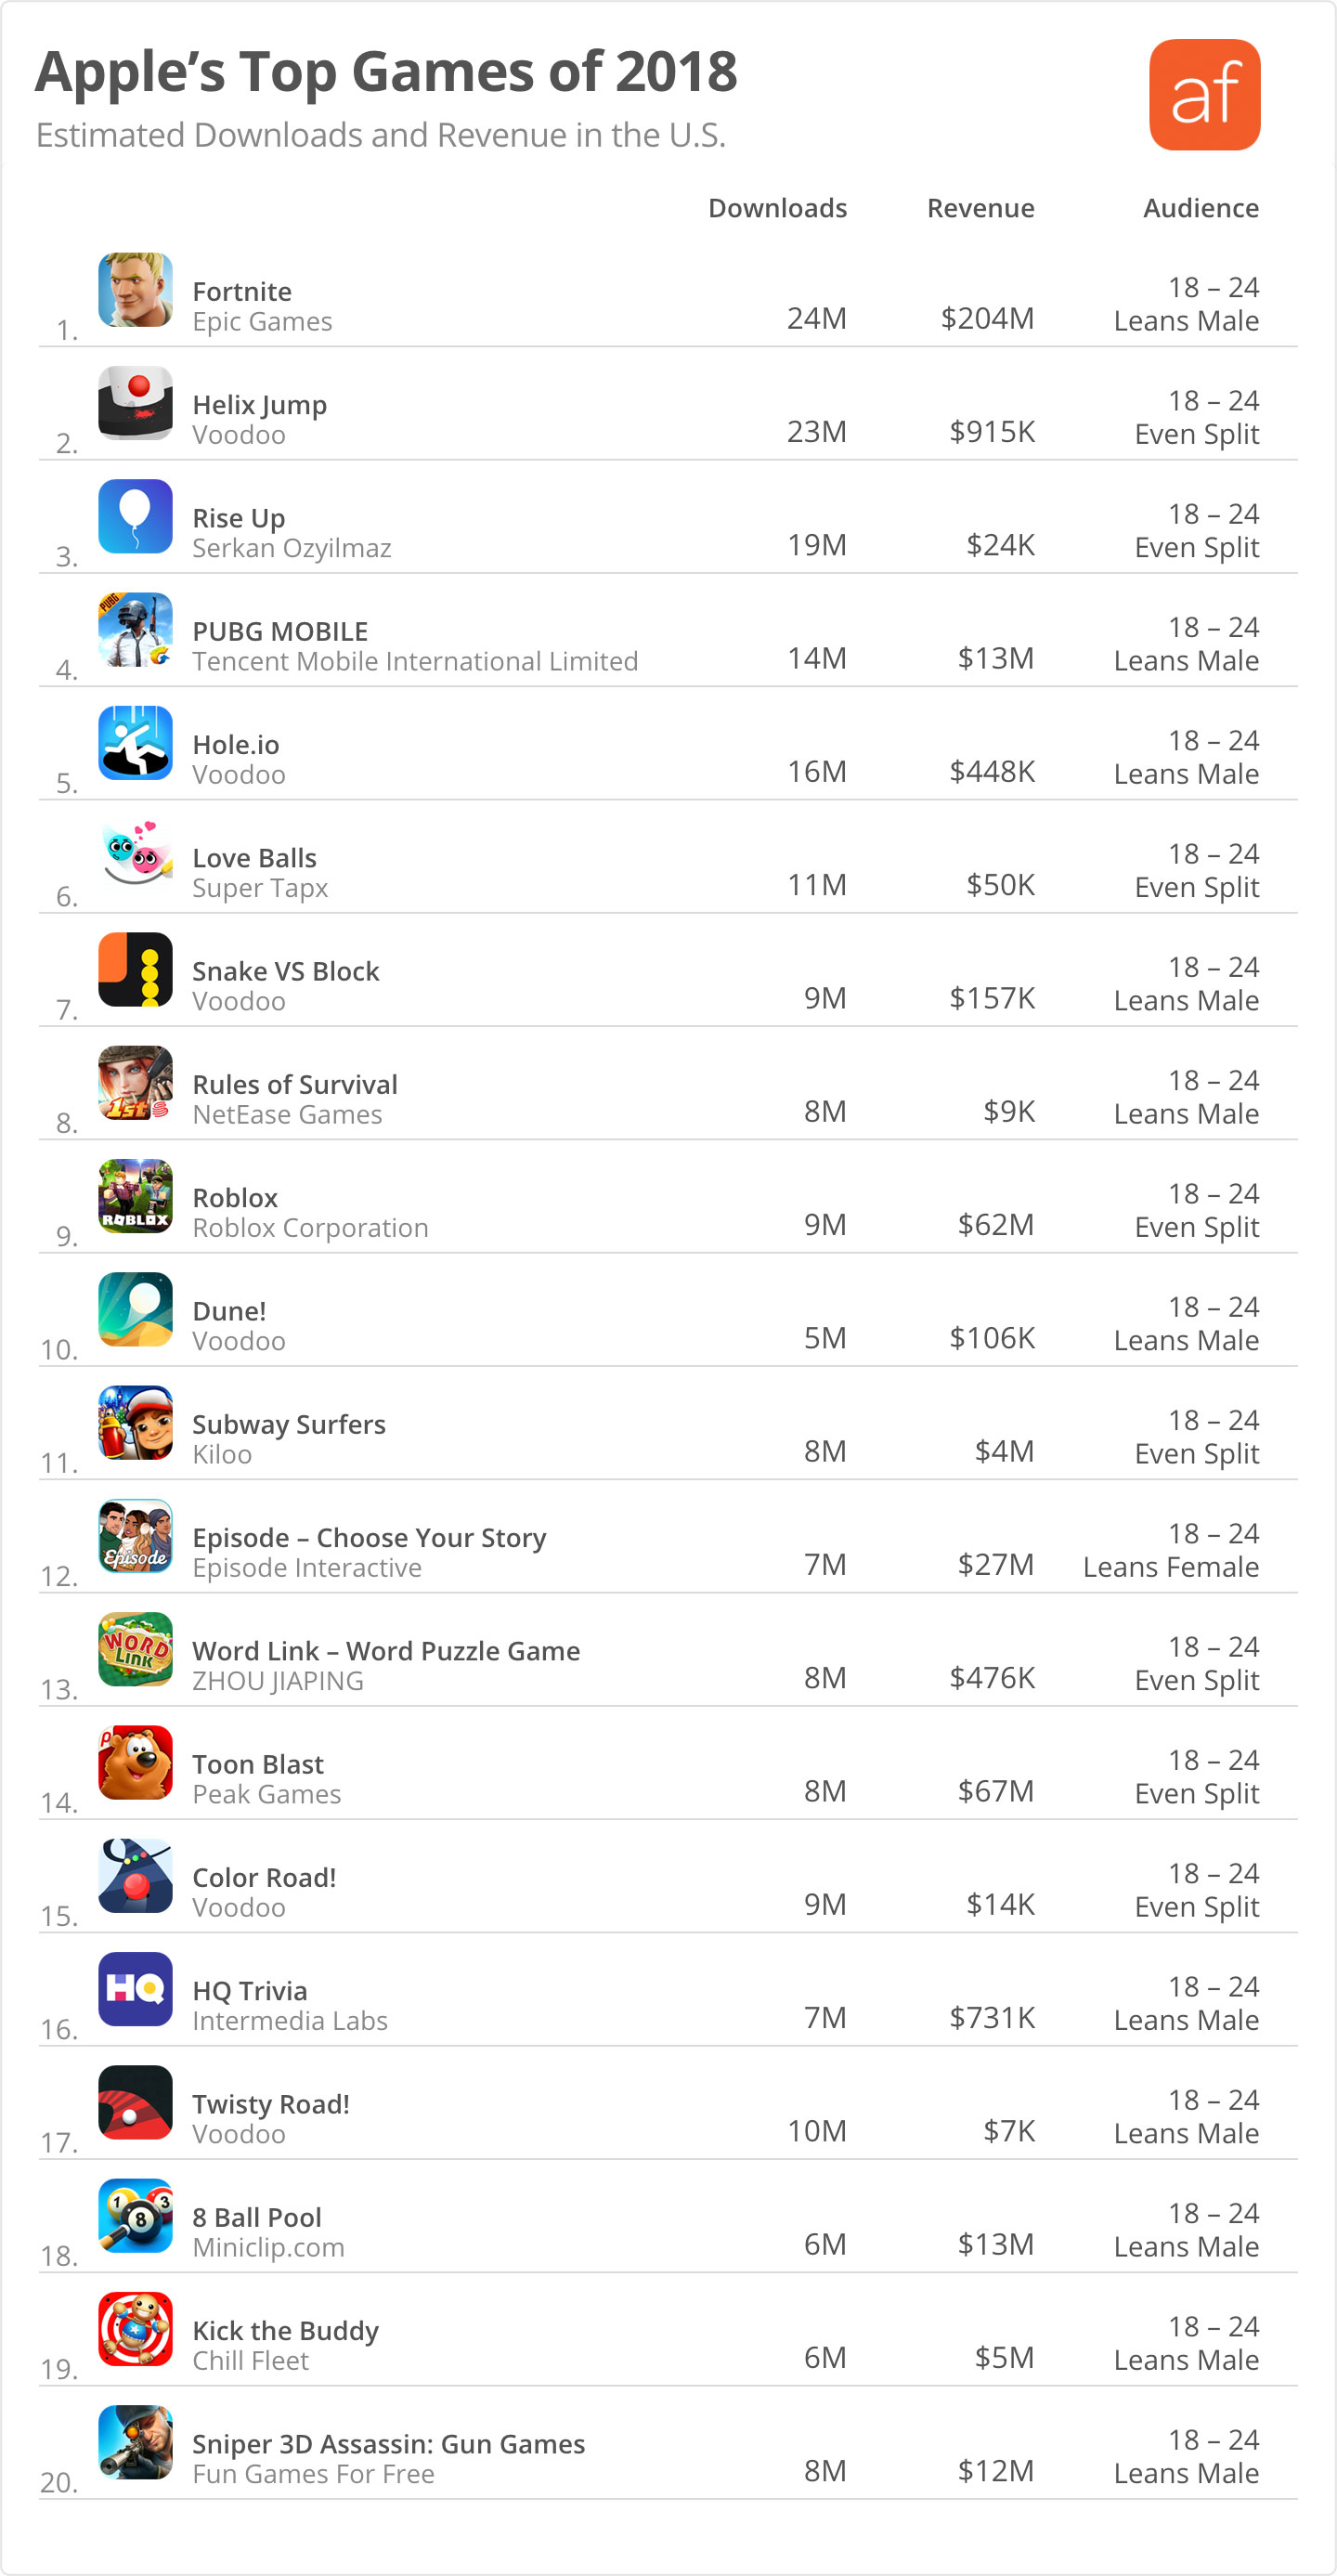 Game download estimates and app store intelligence by Appfigures